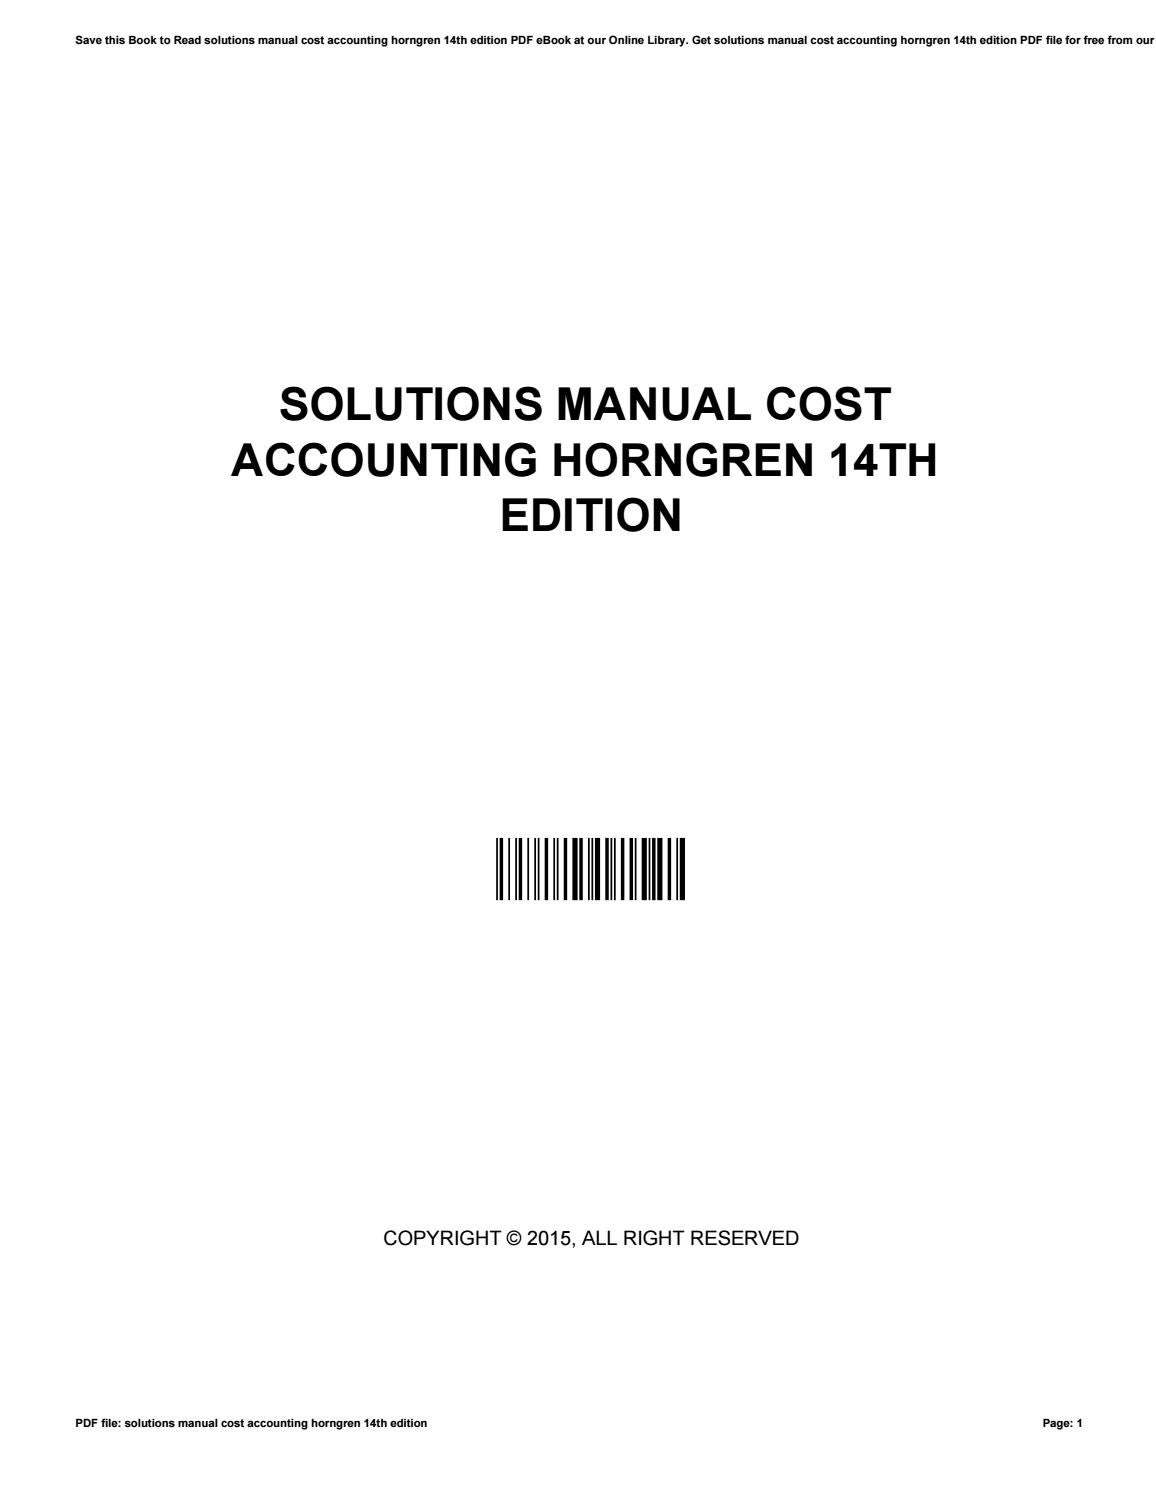 Solutions manual cost accounting horngren 14th edition by  JamesHightower4791 - issuu